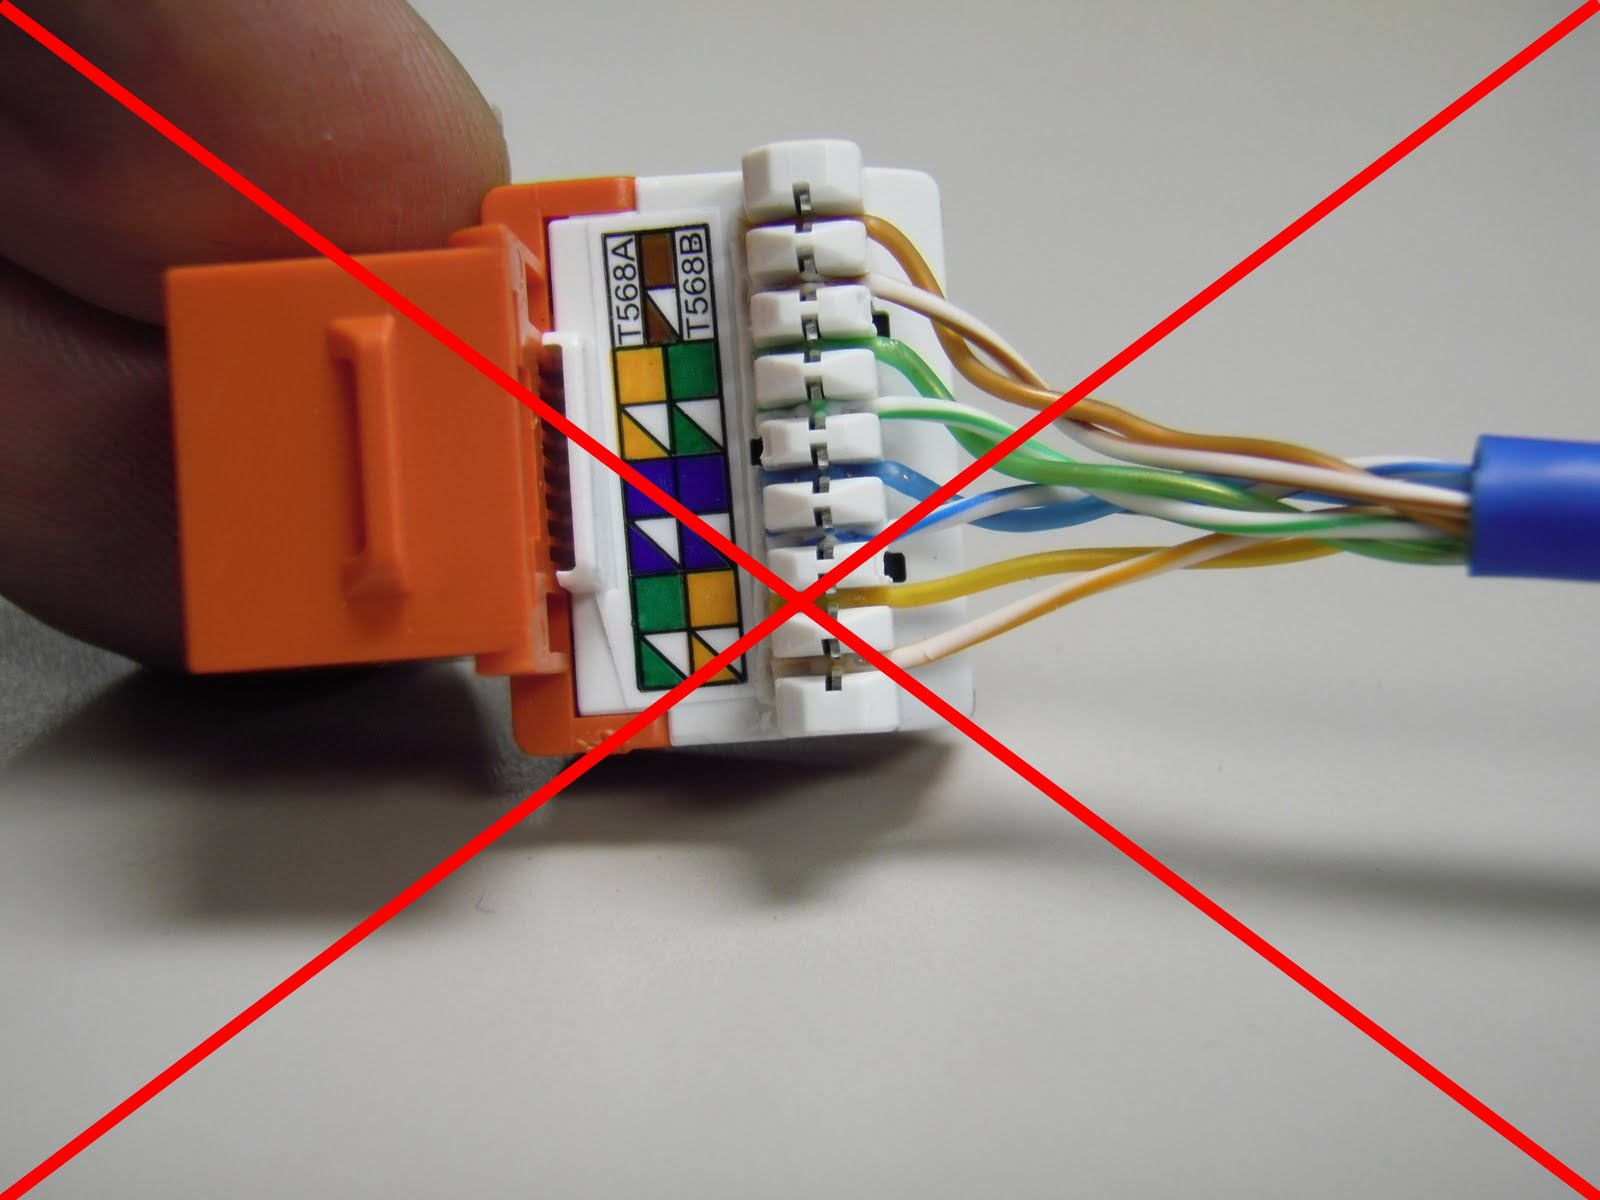 CAT5E+ER+JACK+PUNCHED+WRONG+RED+X the trench how to punch down cat5e cat6 keystone jacks ethernet wall jack wiring diagram at gsmx.co